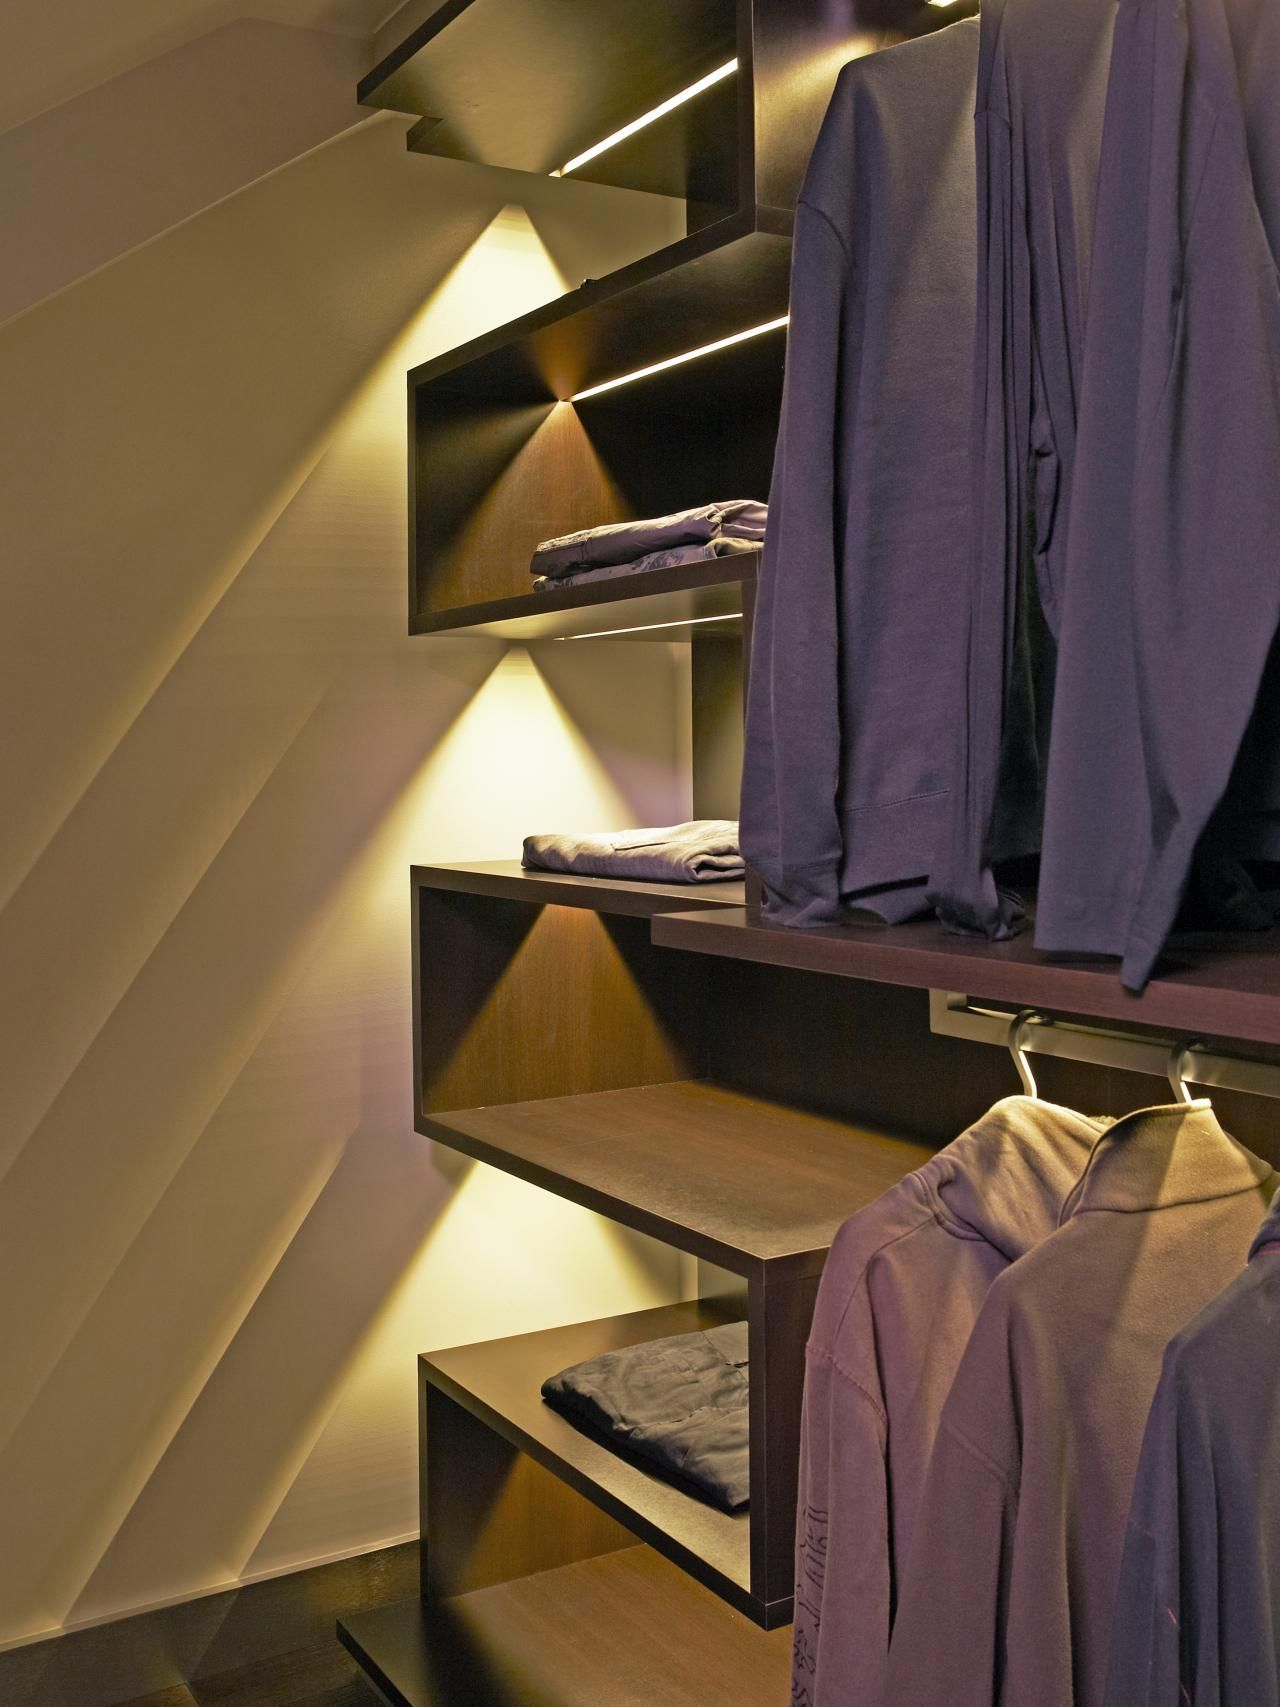 Design Closet Light practical closet lighting ideas that brighten your day dimmers